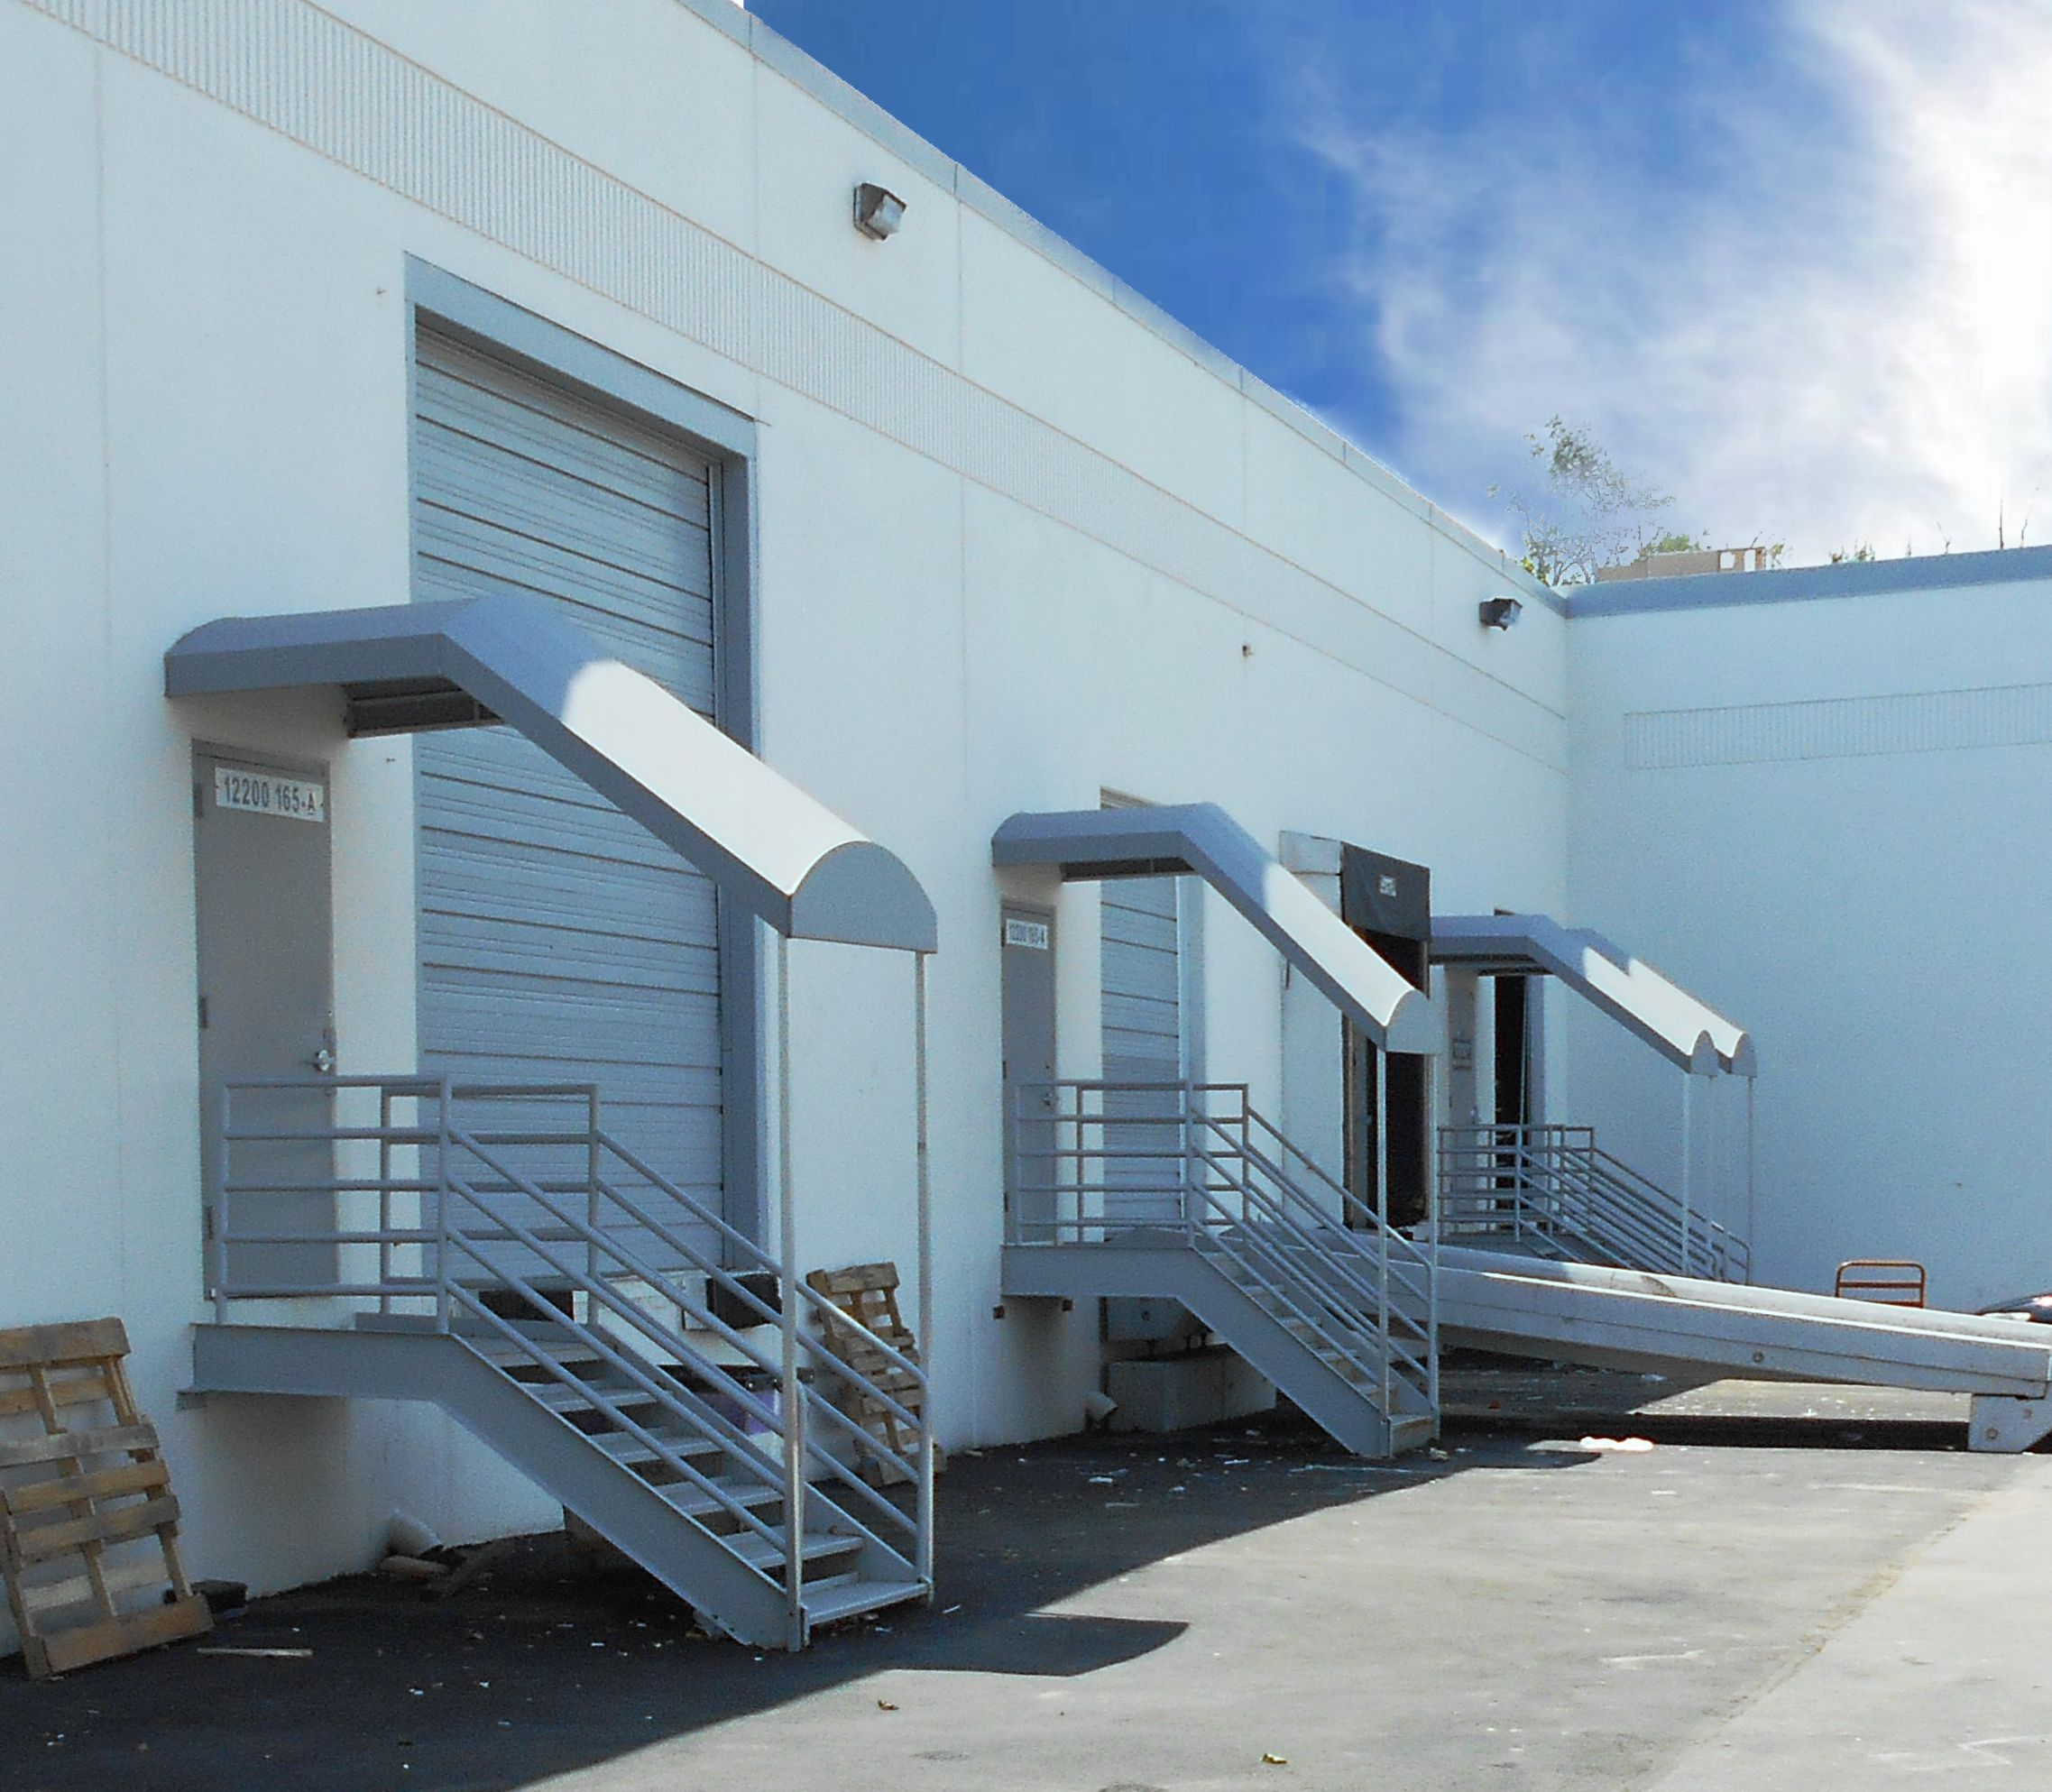 Stairway Awnings By Hoffman Awning Can Dress Up A Building While Adding Safety Factor As